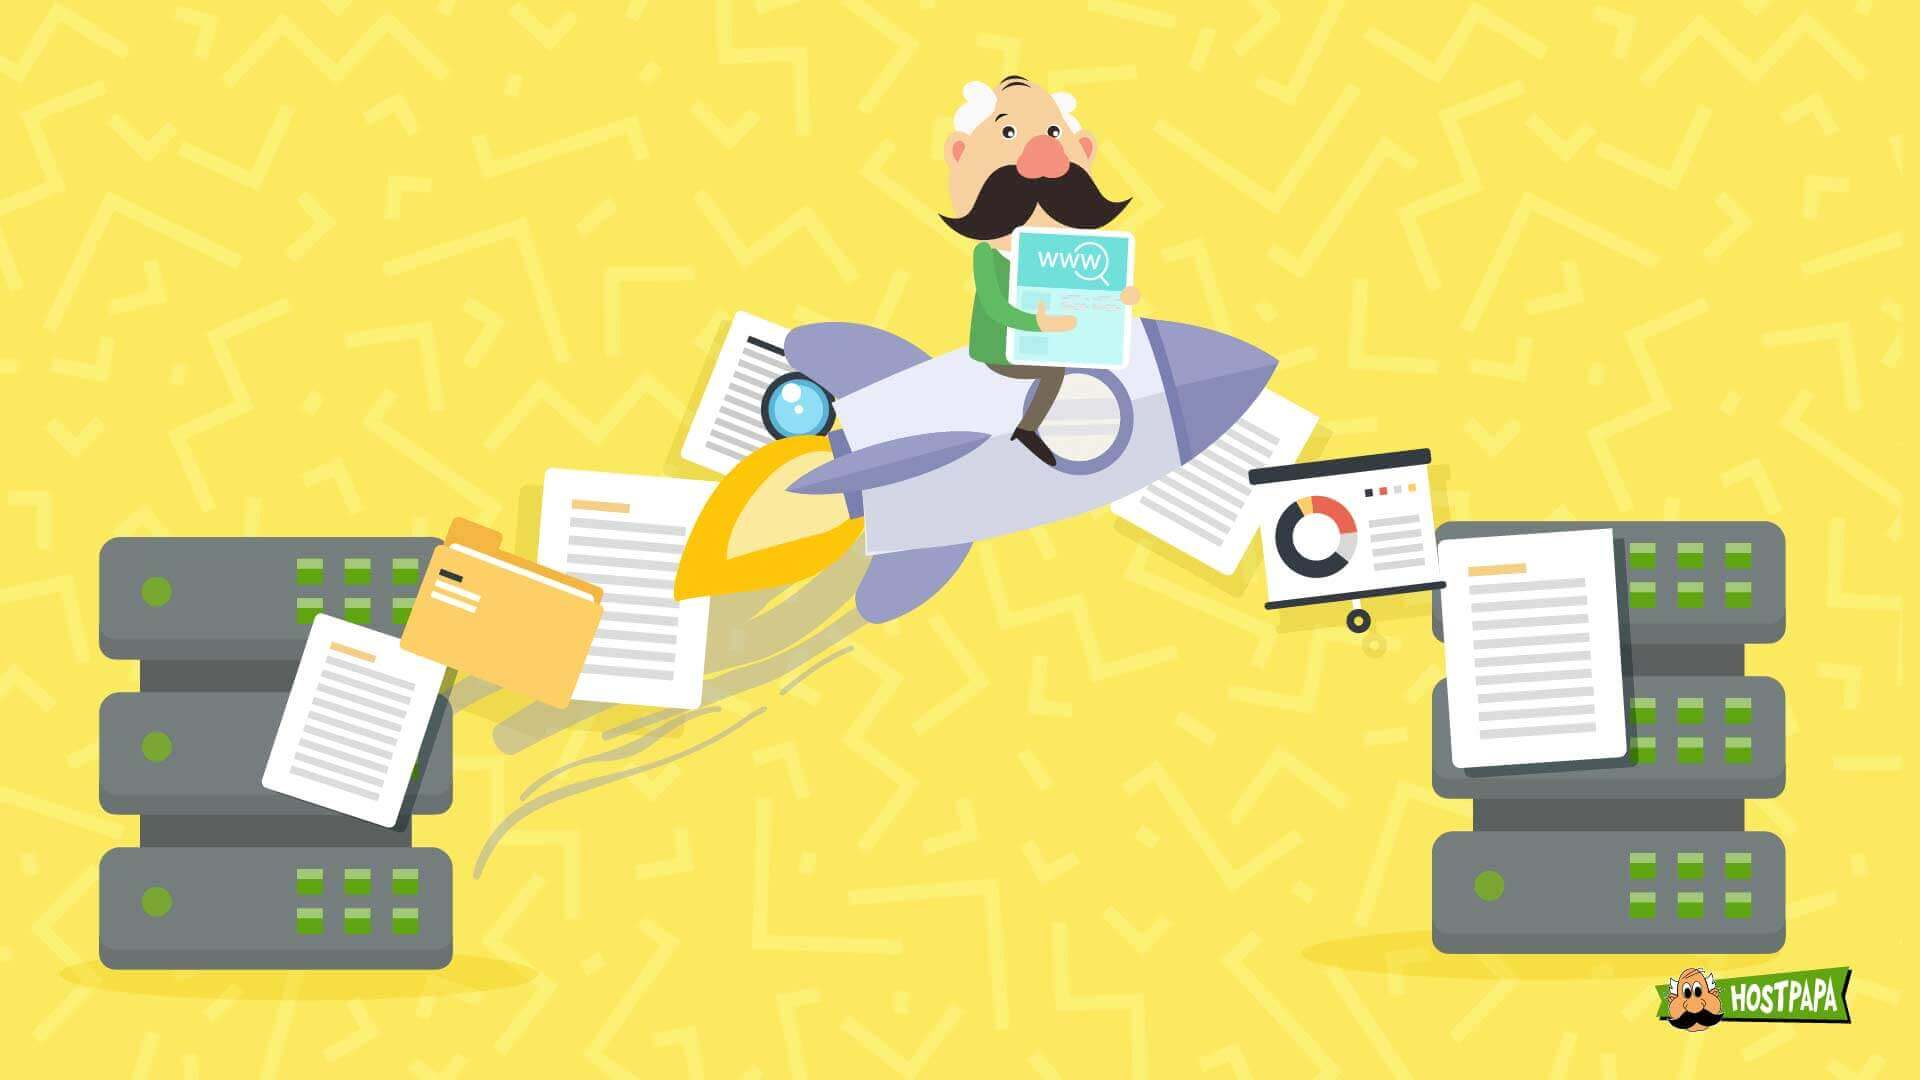 Migrate your website without hurting SEO